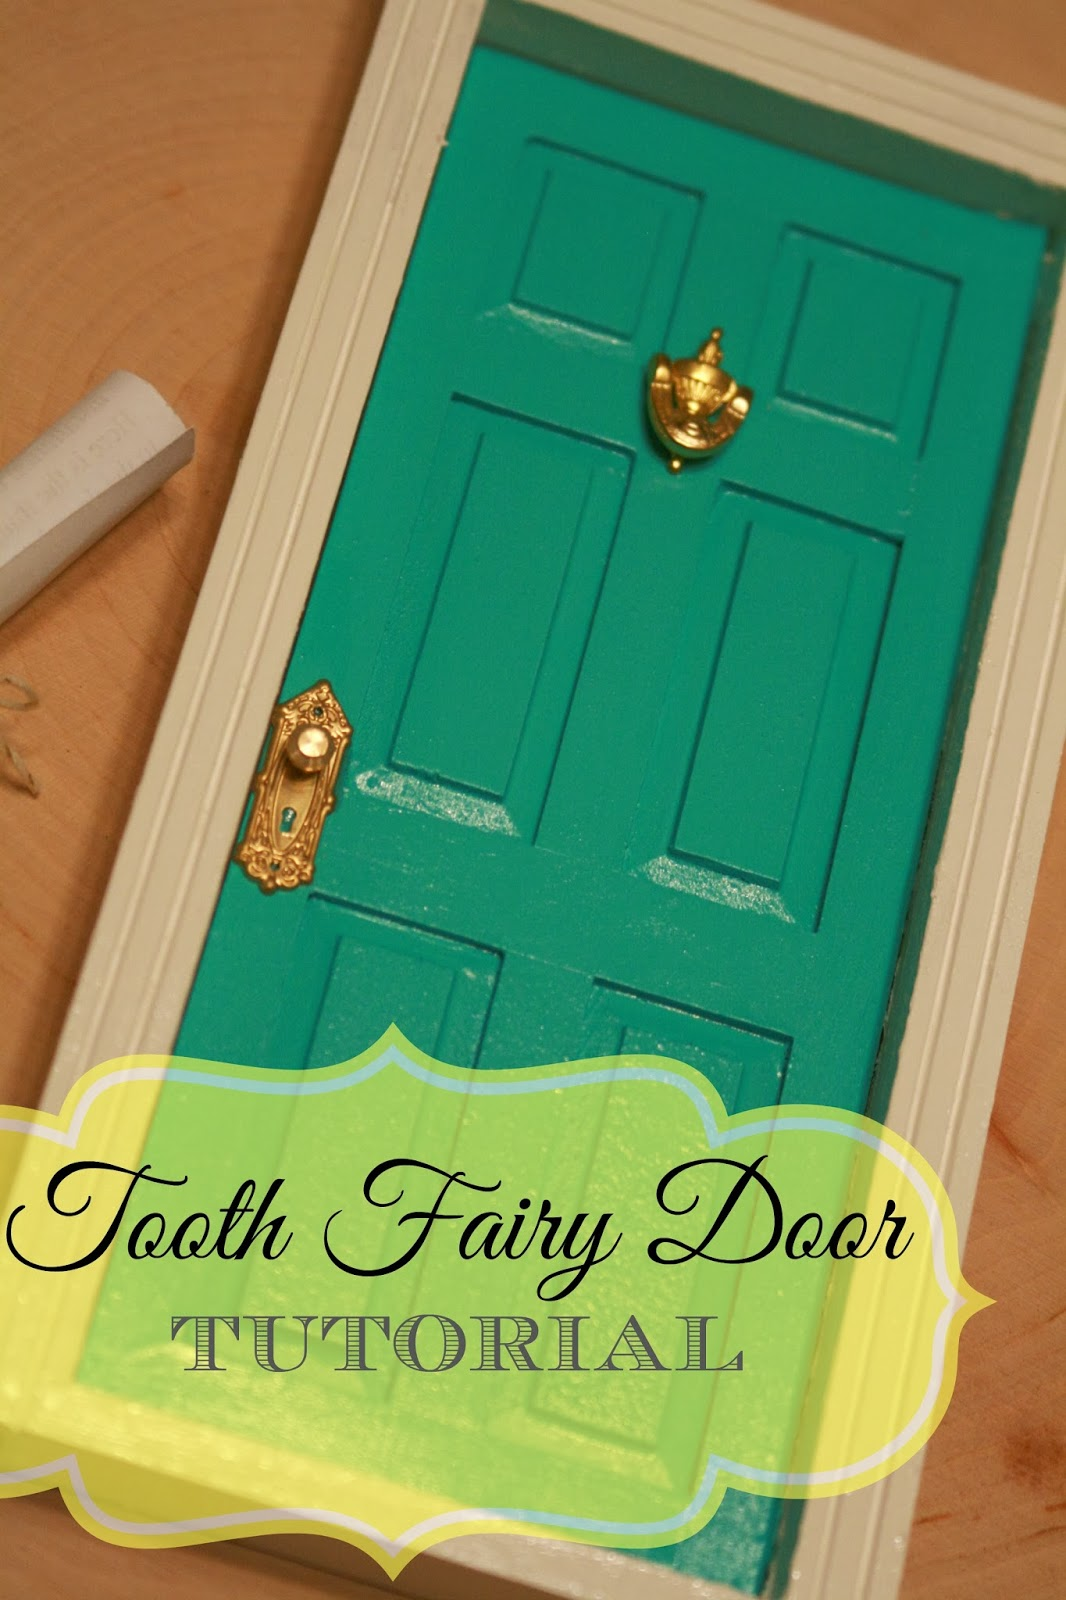 Tooth Fairy Door - Tutorial : toothfairy door - pezcame.com